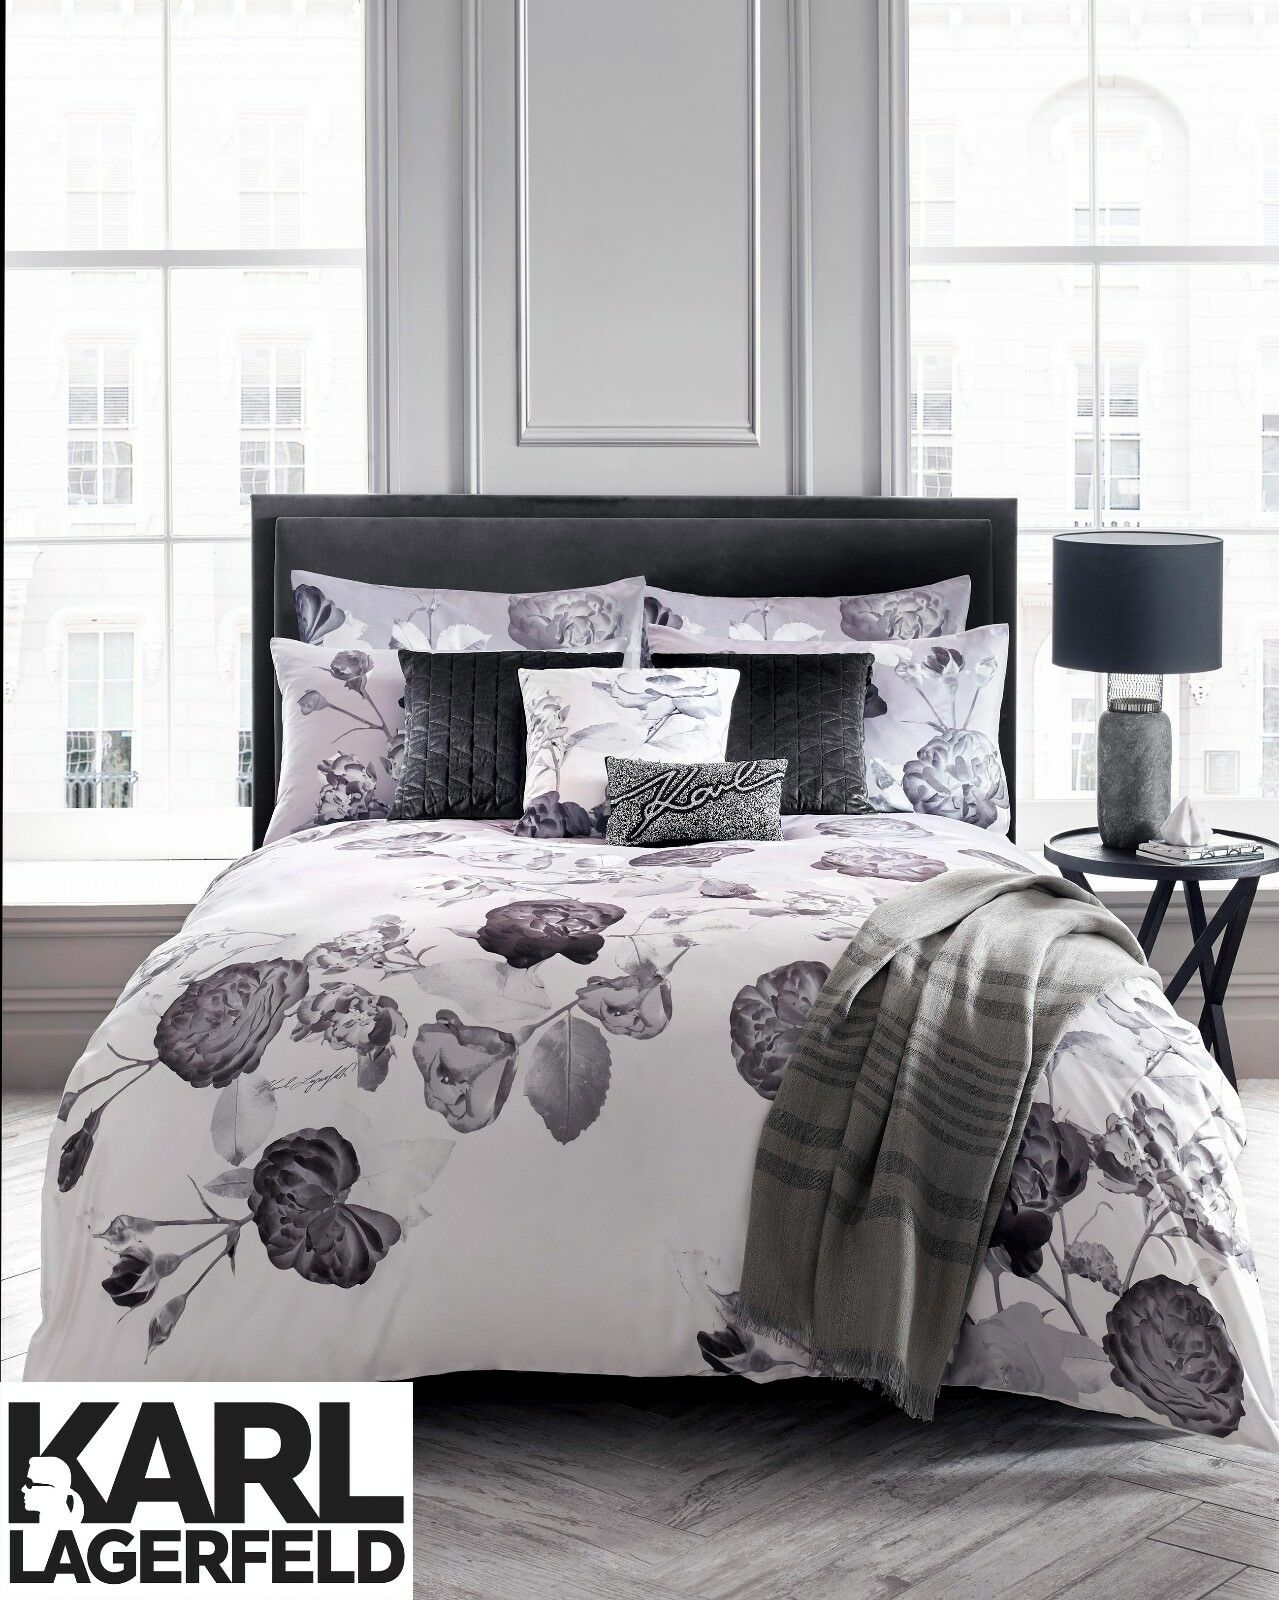 Karl Lagerfeld Designer SENNA FLORAL Printed 100% Cotton Soft Bedding Bed Linen